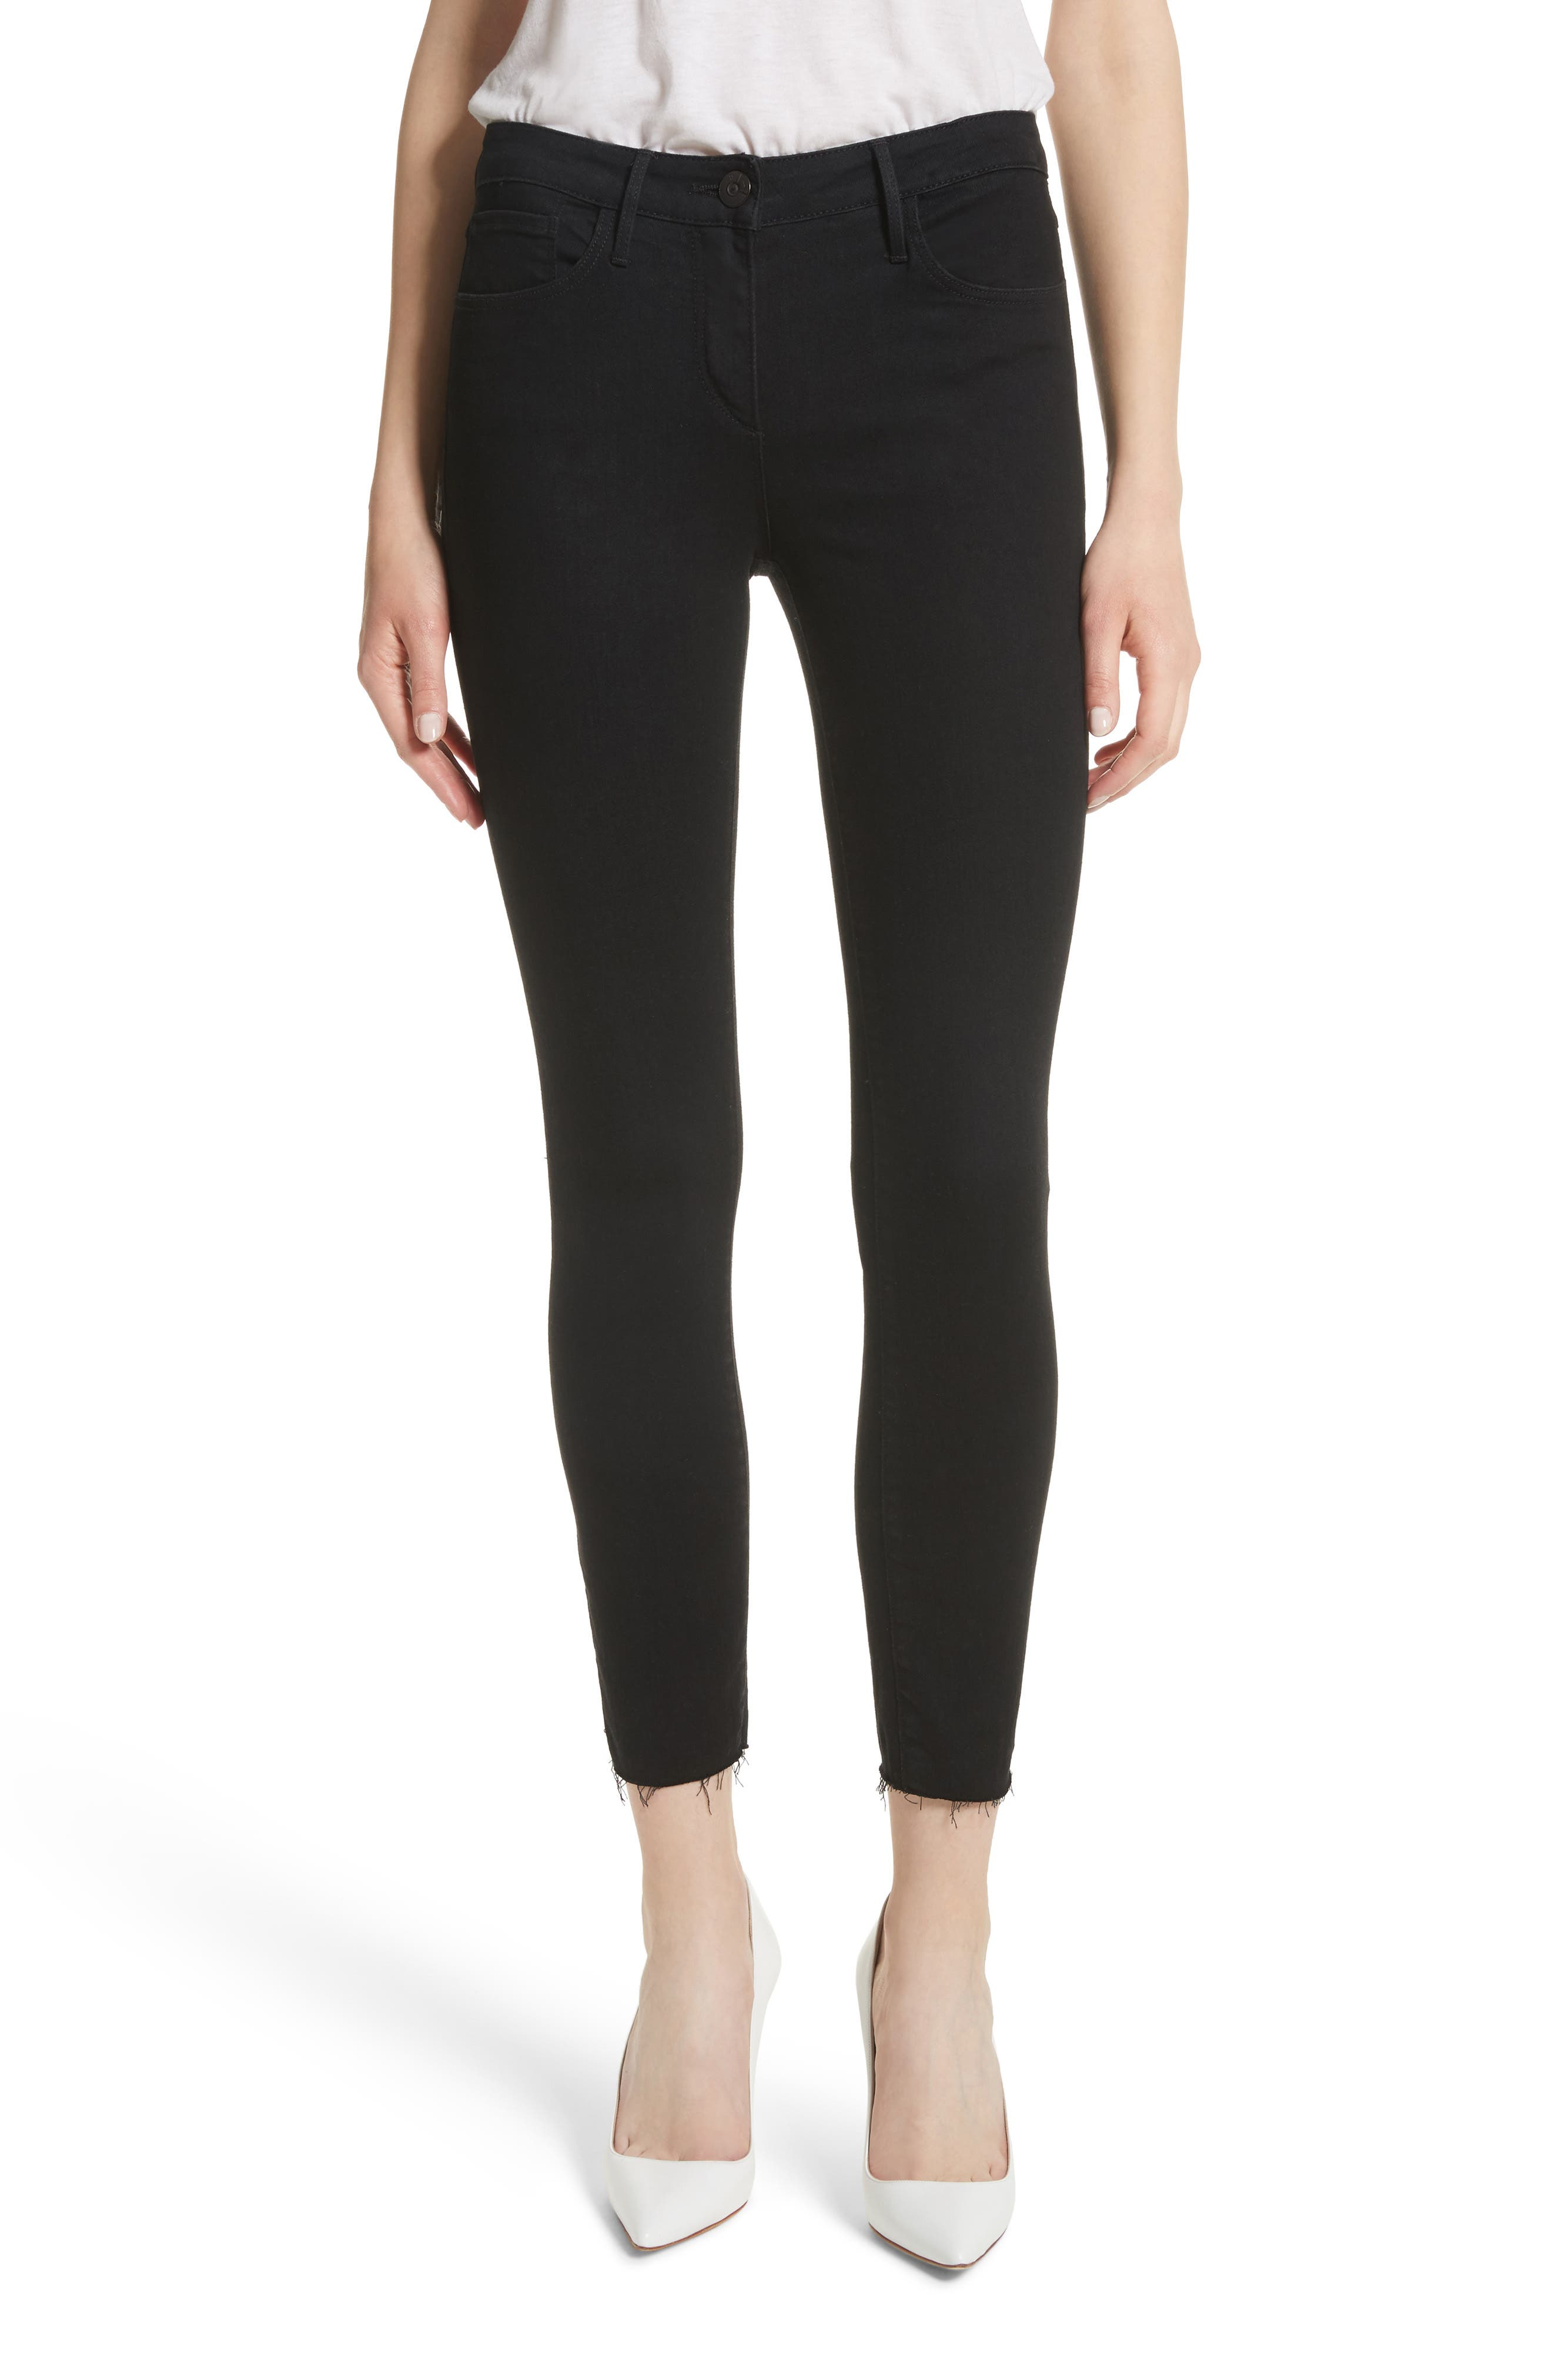 W2 Crop Skinny Jeans,                             Main thumbnail 1, color,                             BLACK TEAR